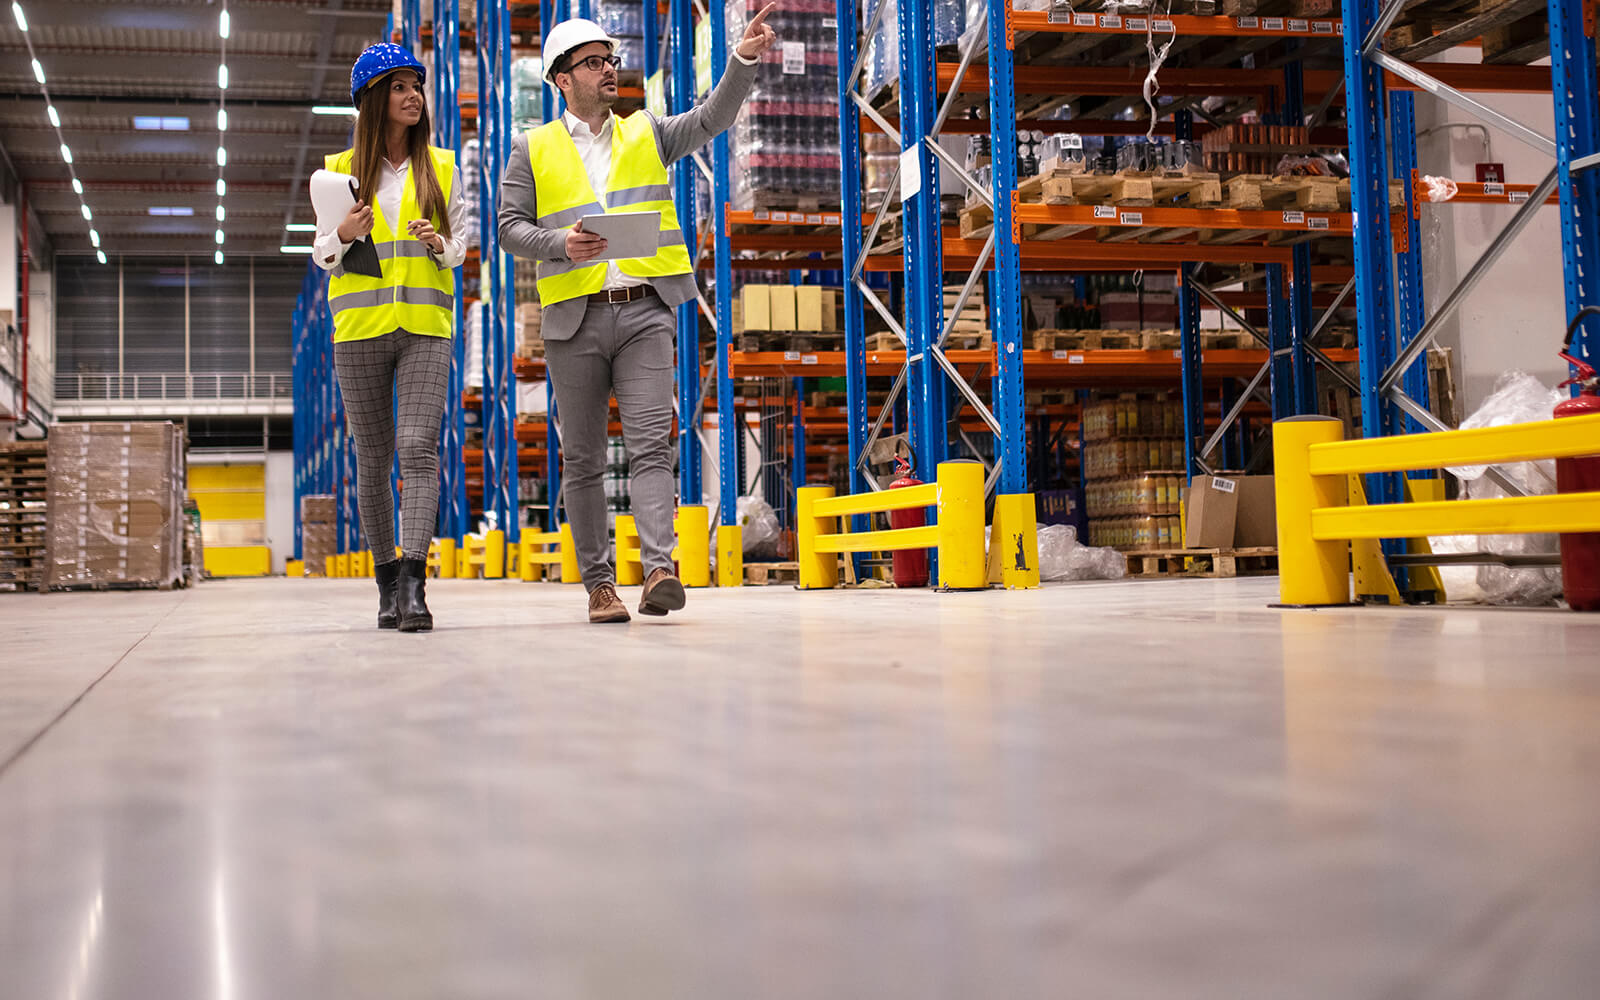 Safety manager walking with employee in warehouse